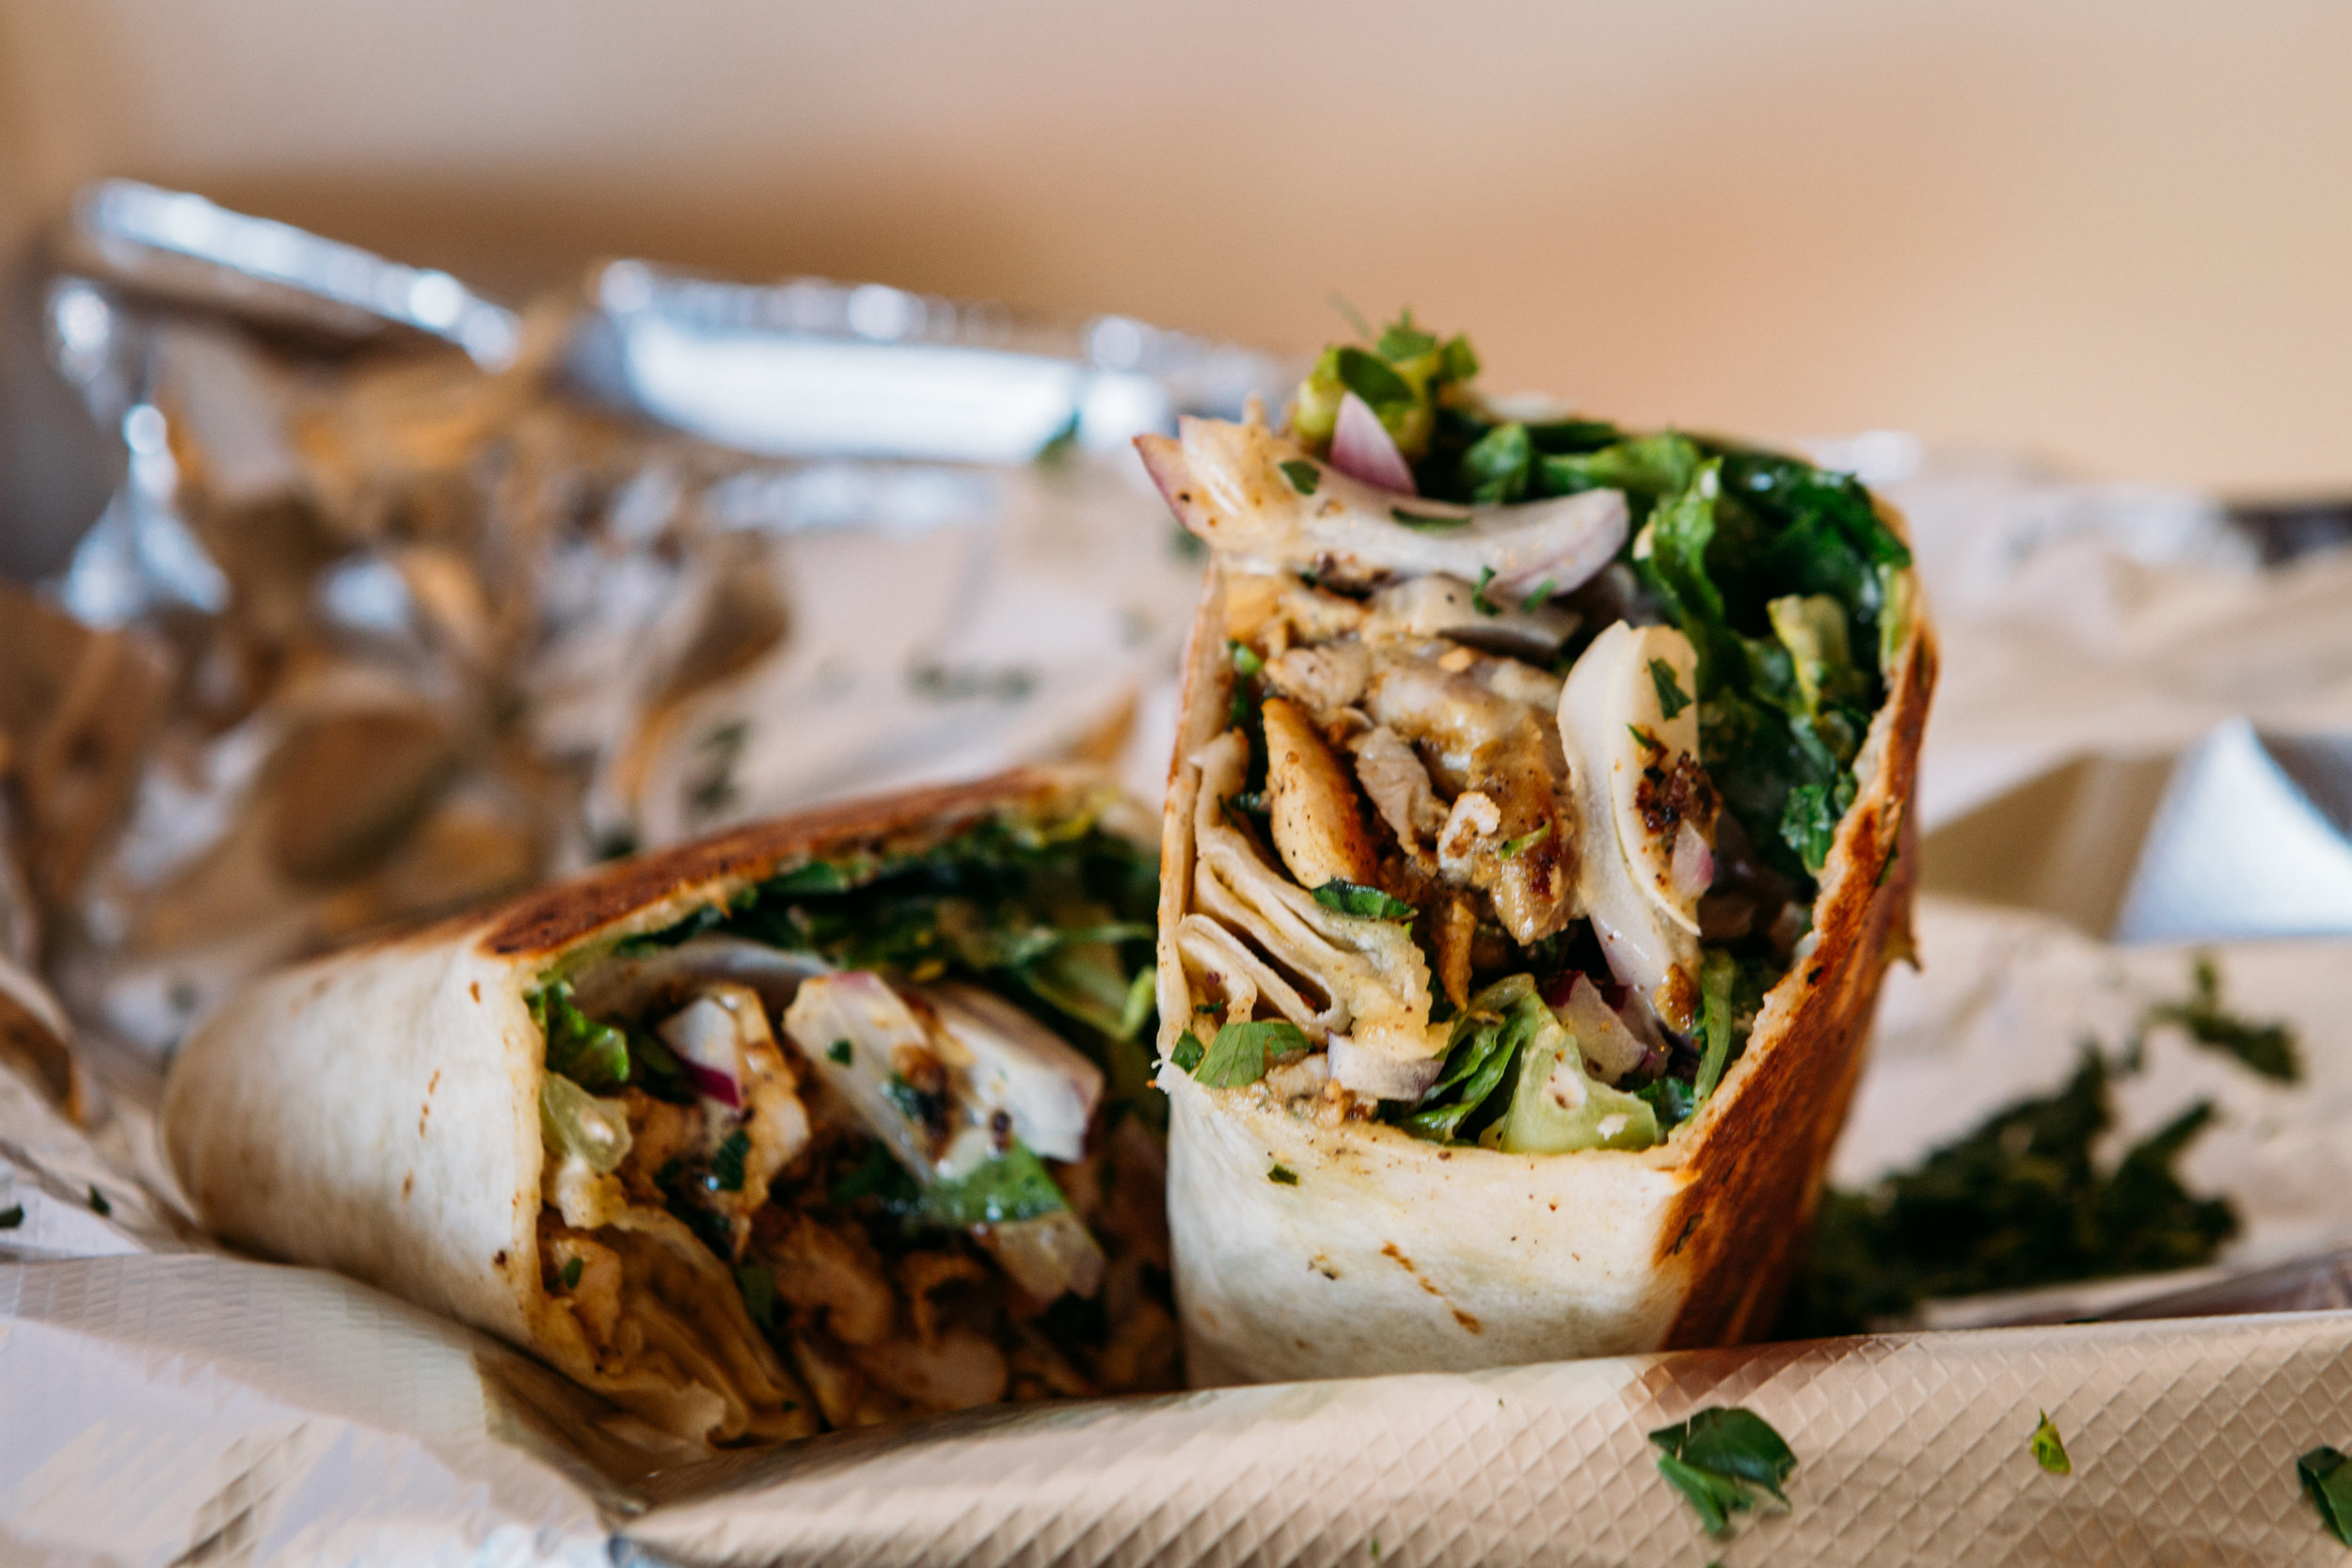 middleterranean-best-lunch-addison-illinois-wrap-2.jpg